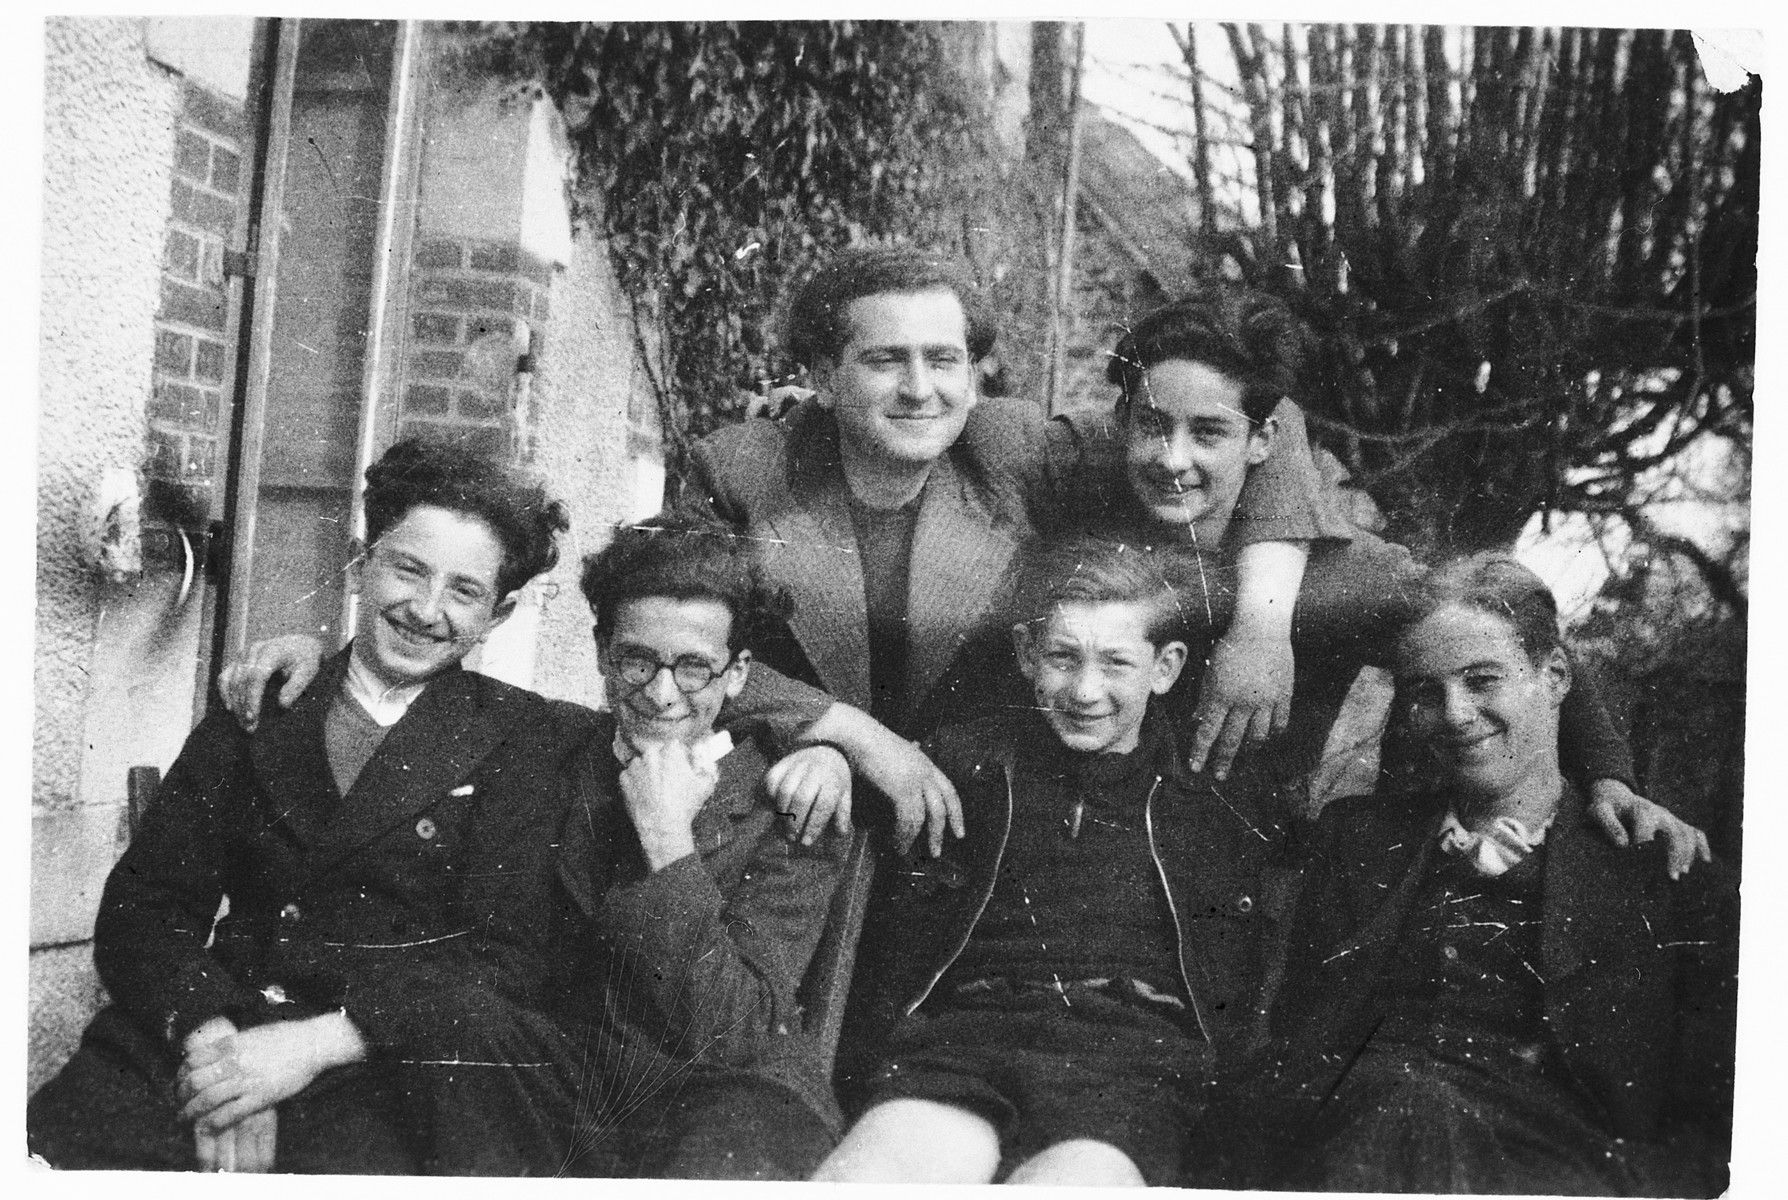 Jewish teenagers pose outside on the steps of the Chabannes children's home.   Pictured from left to right are Eryk Goldfarb, David Kenig, Budnik, Wolfgang Blumenreich.  Back row: Simon Mangel (a teacher) and Ernest Rosner.